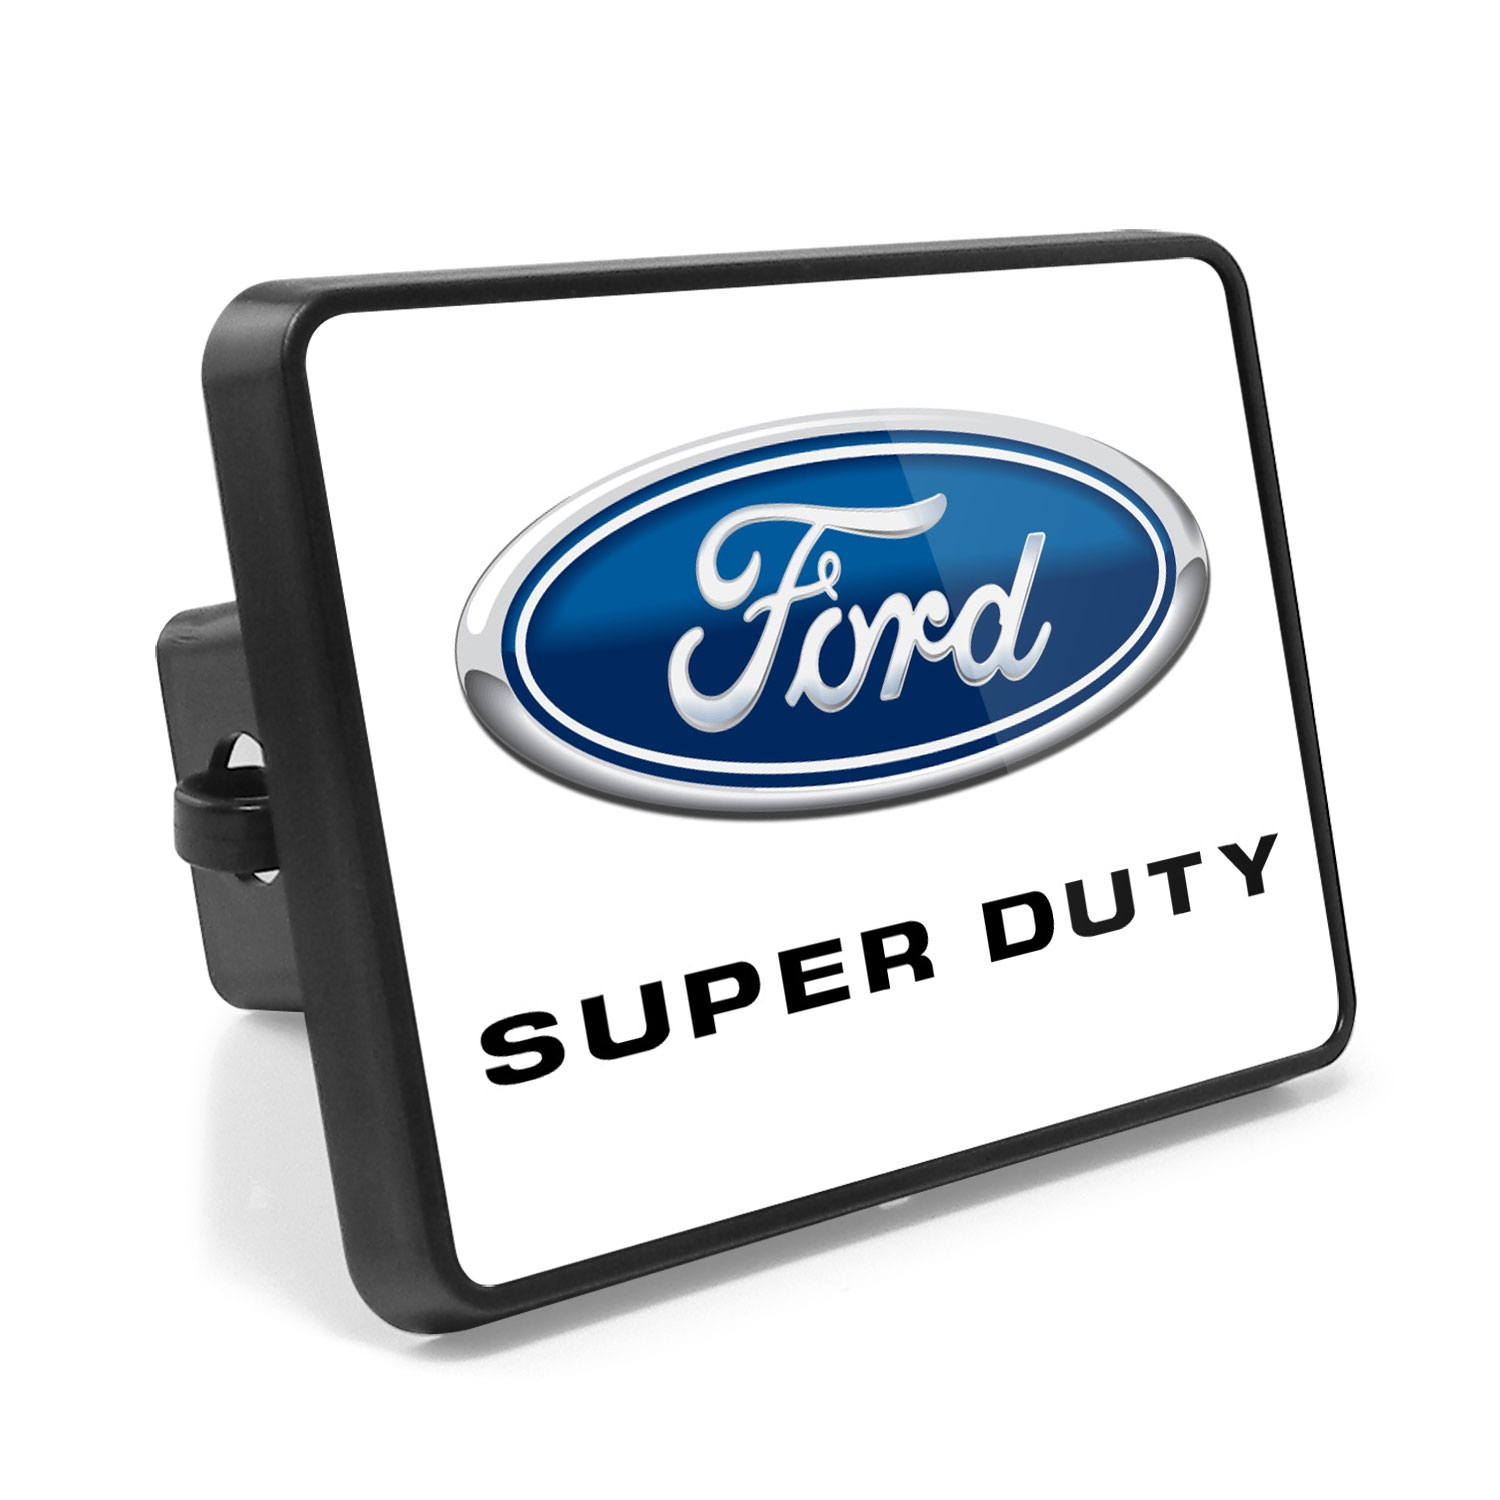 Ford F-Series Super Duty 2011 to 2016 UV Graphic White Metal Plate on ABS Plastic 2 inch Tow Hitch Cover